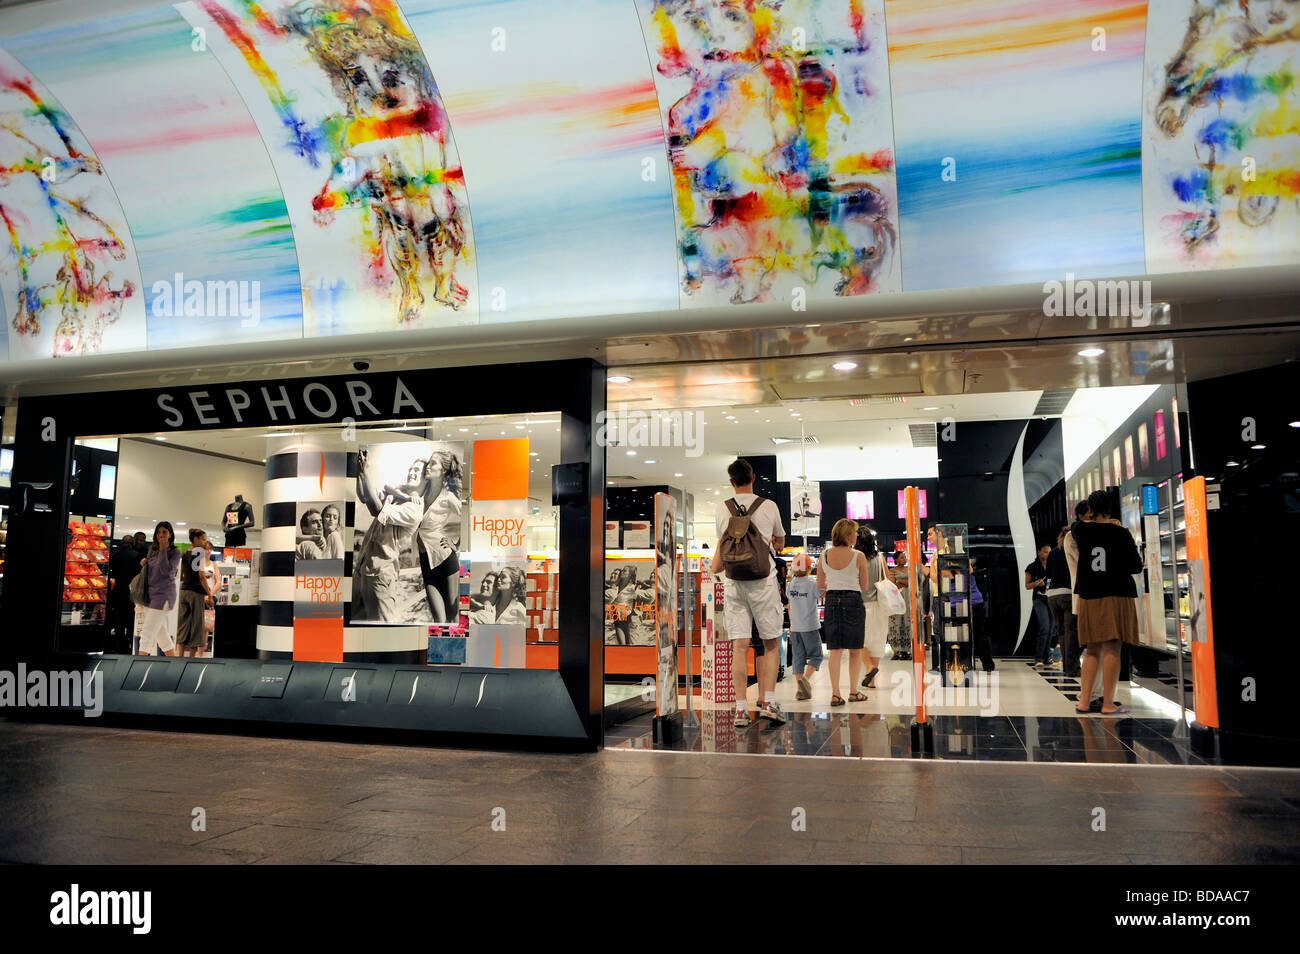 Paris France, Family Shopping at Sephora Cosmetics Shop at Forum des Halles, Shopping Center inside - Stock Image